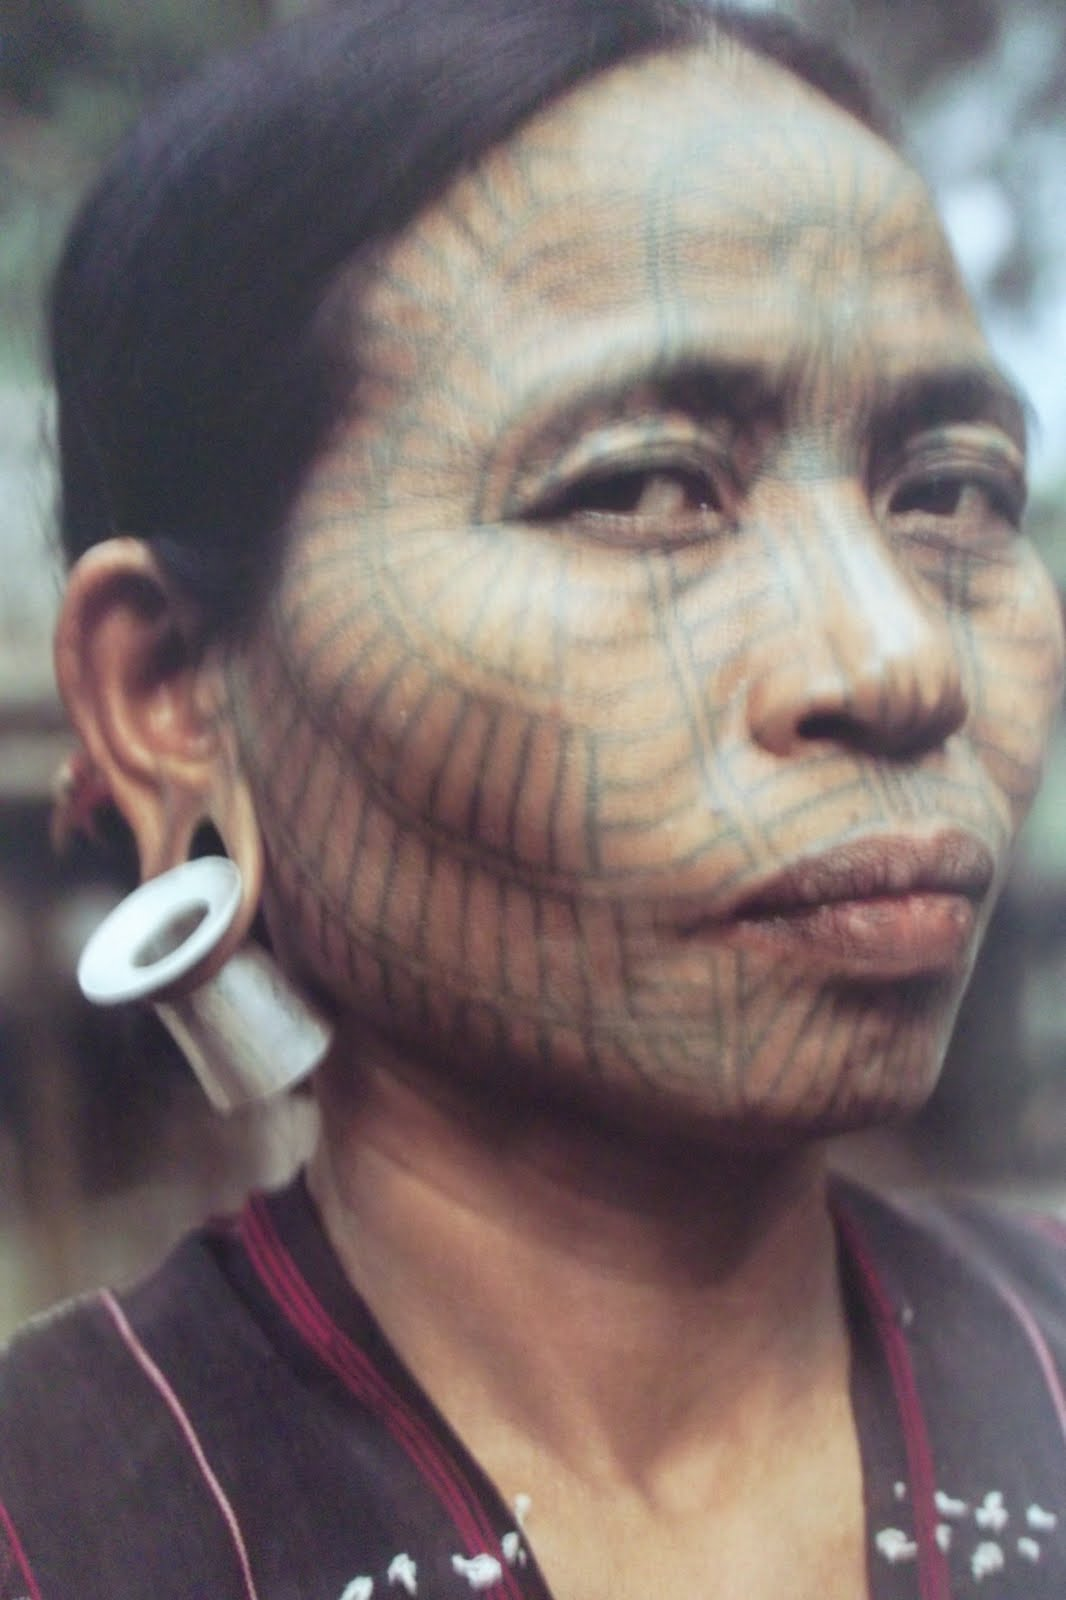 Cringiest Makeup Tutorials Of All Time: These Tribes Had A Very Good Reason To Tattoo Their